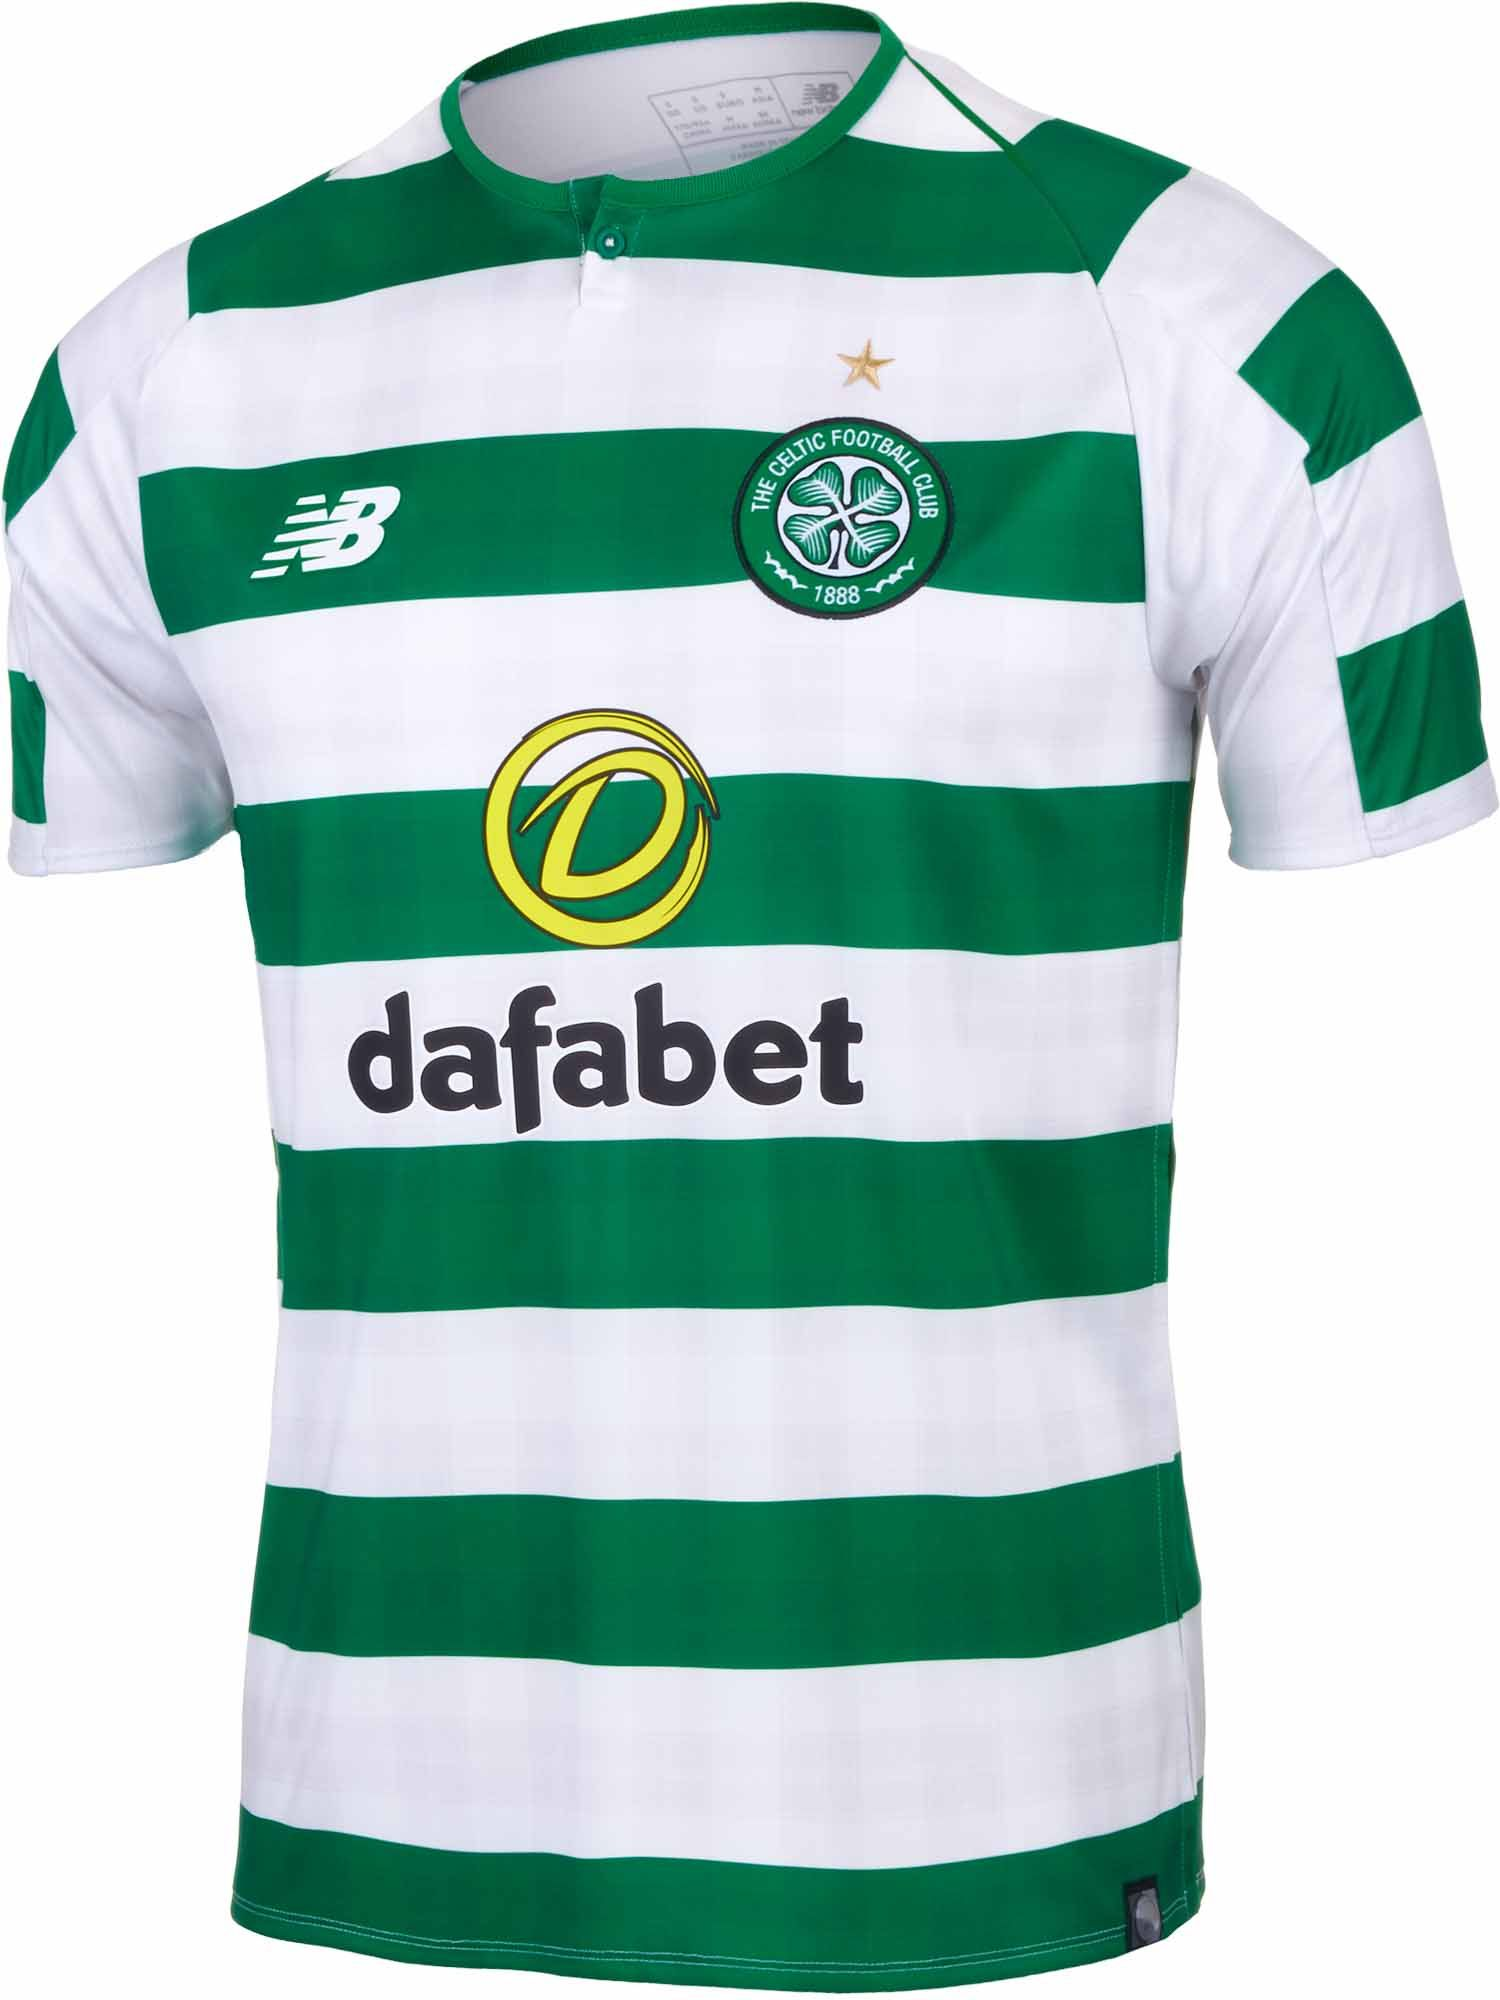 2018 19 New Balance Celtic Home Jersey. Buy yours from soccerpro.com 531b6d1c0dd4e